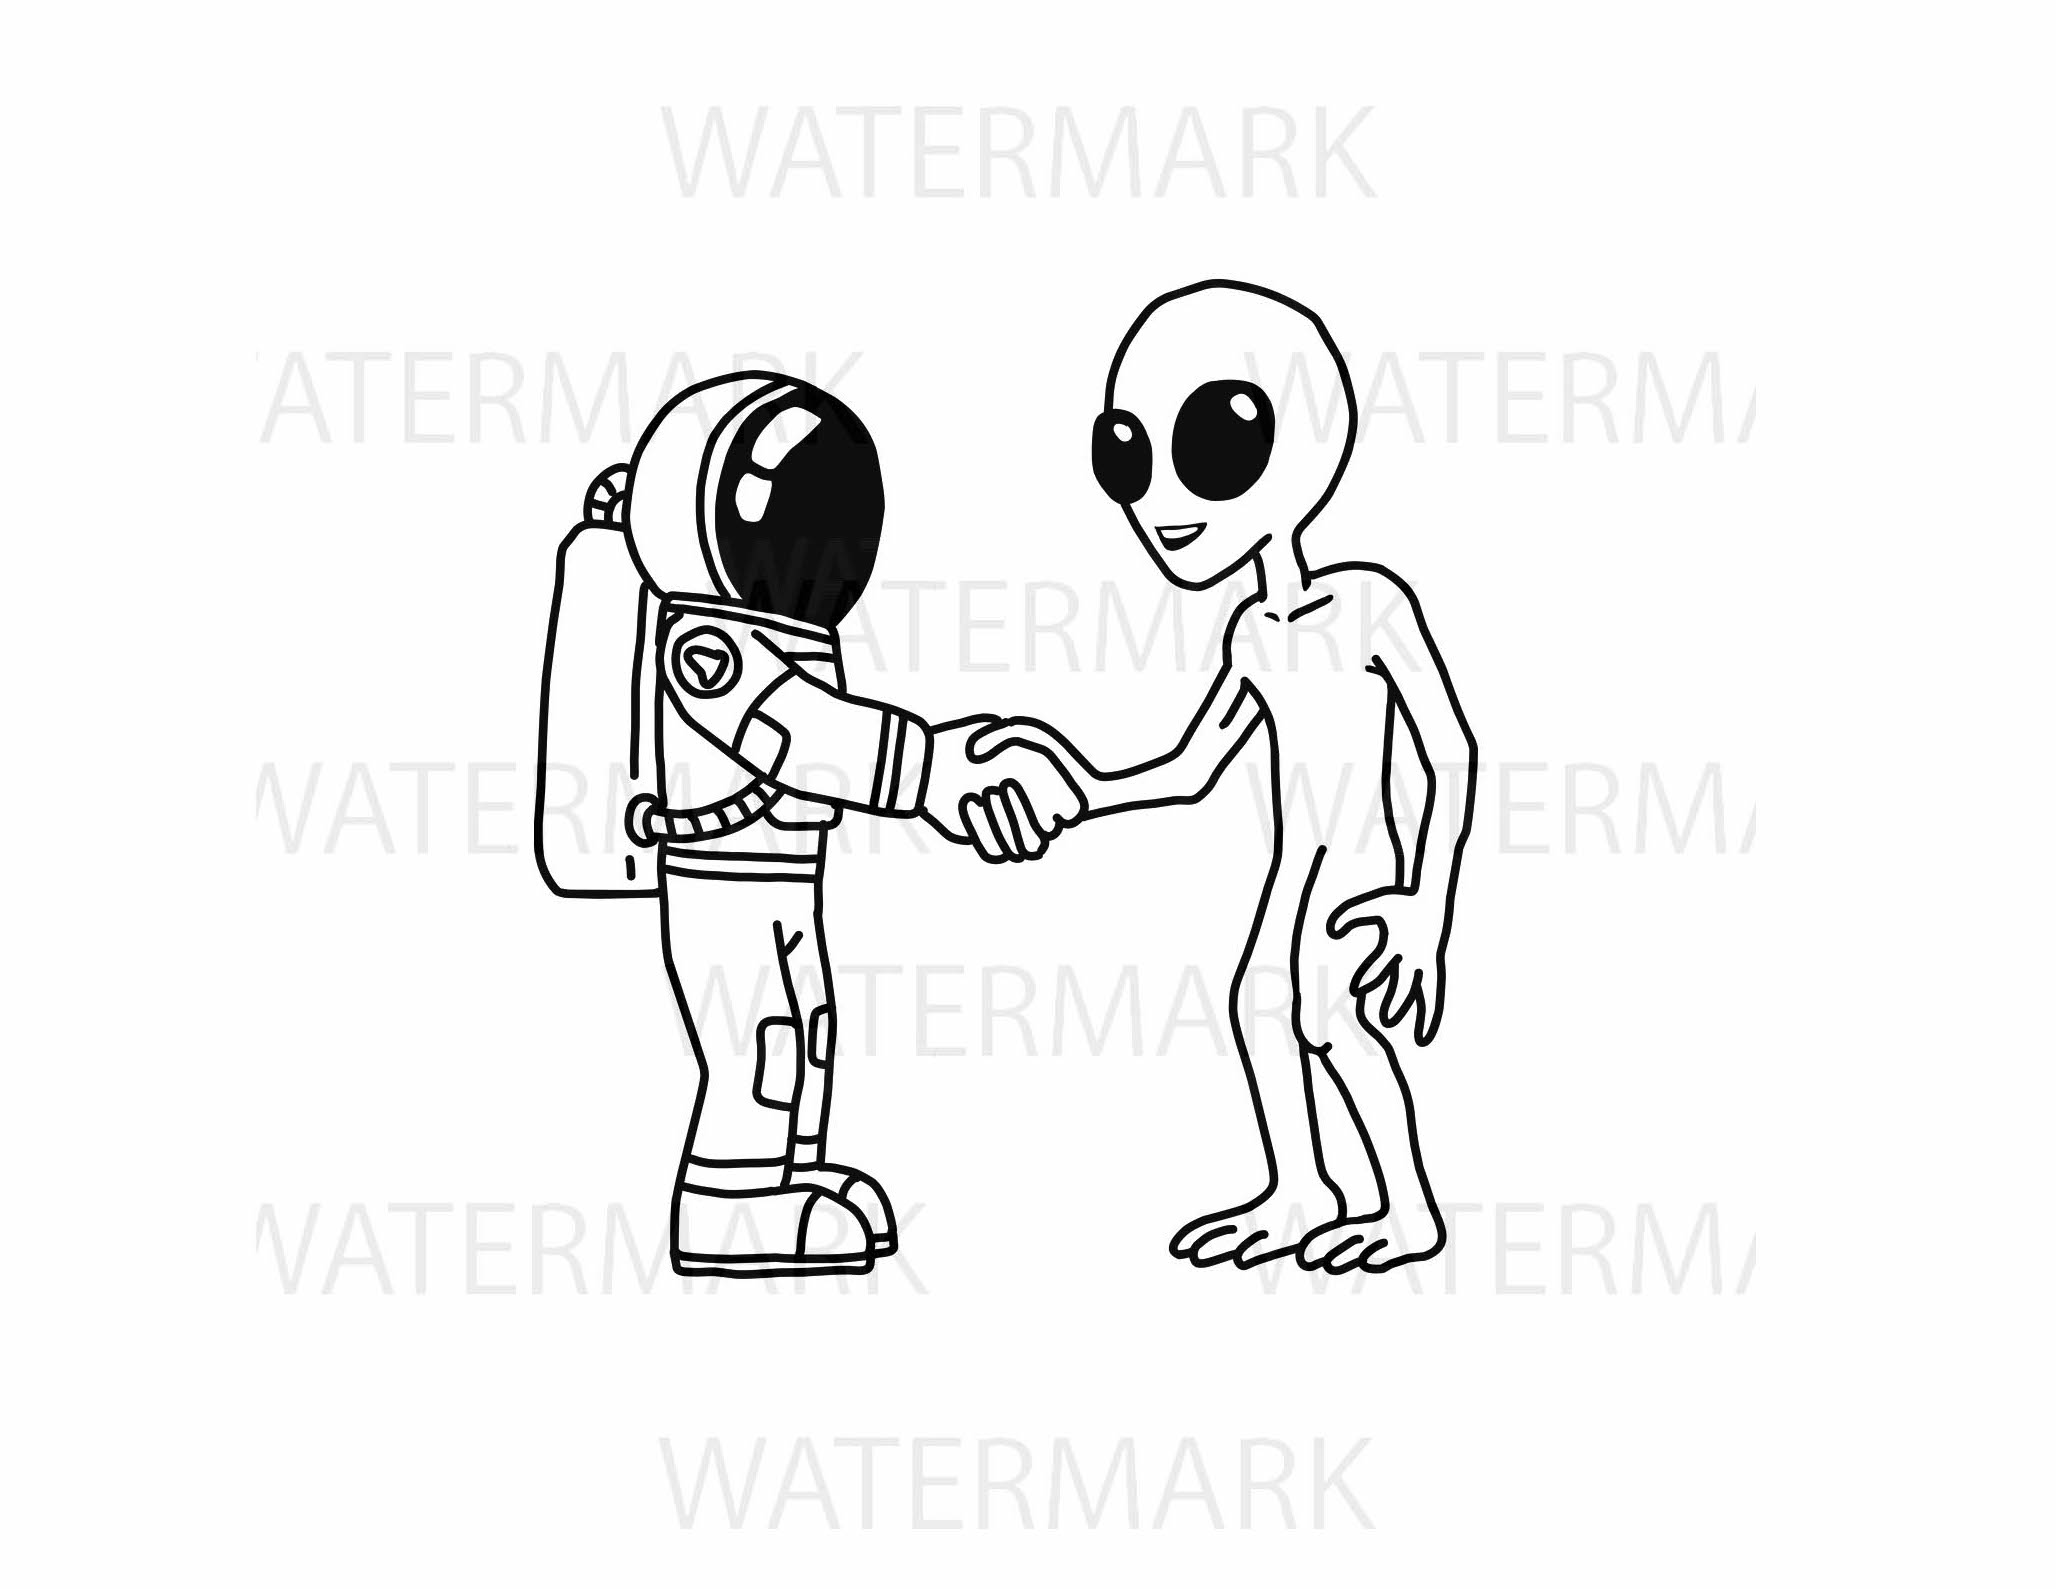 Astronaut handshake with an alien for peace - SVG/JPG/PNG Hand Drawing example image 1